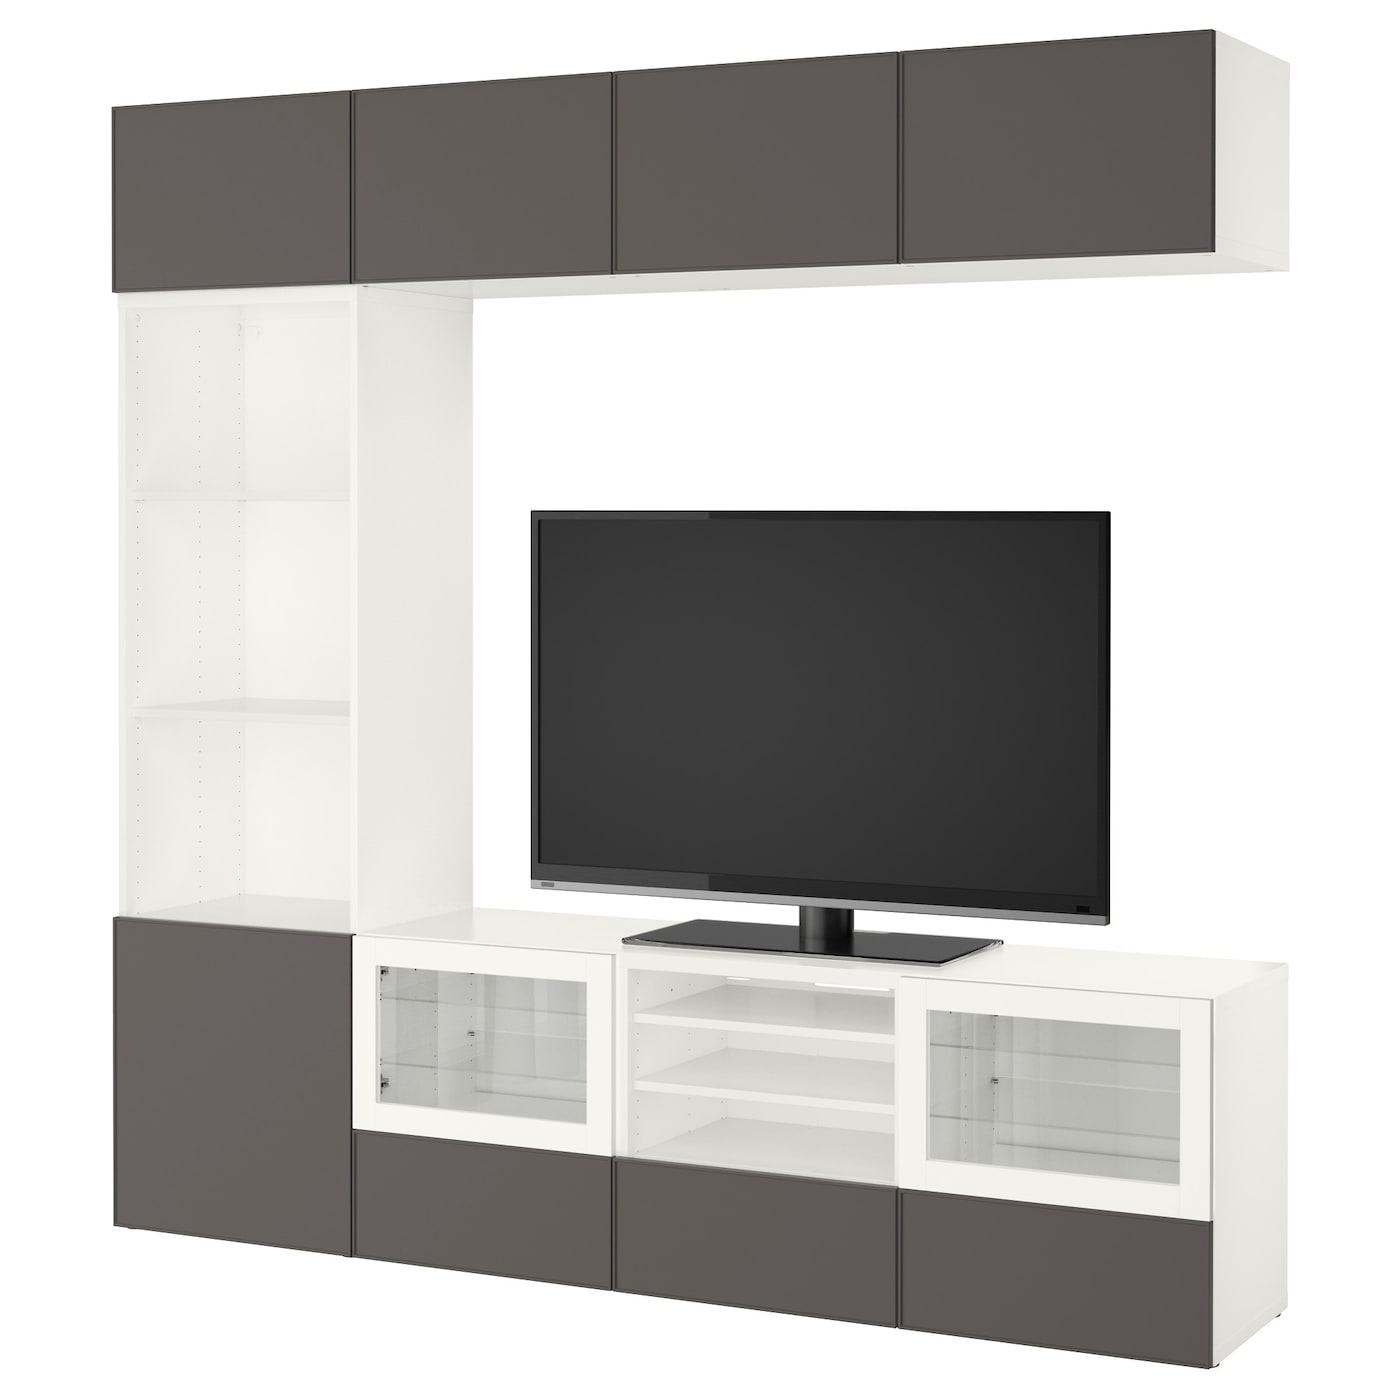 Best tv storage combination glass doors white grundsviken for Ikea meuble mural besta